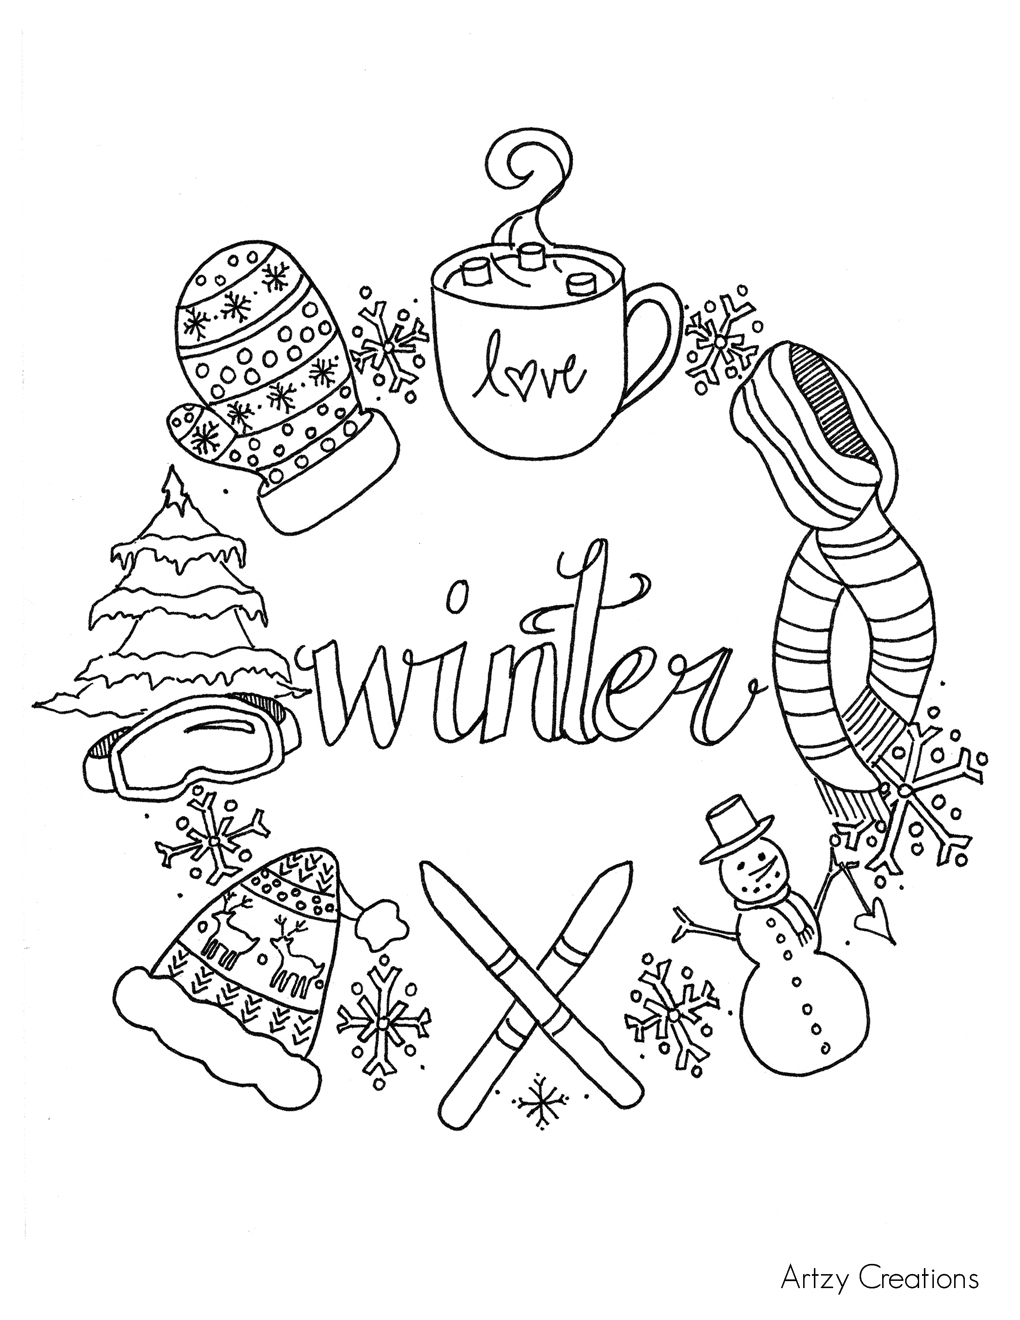 Winter Crafts for Kids | Coloring pages, Coloring pages for kids ... | 1320x1020